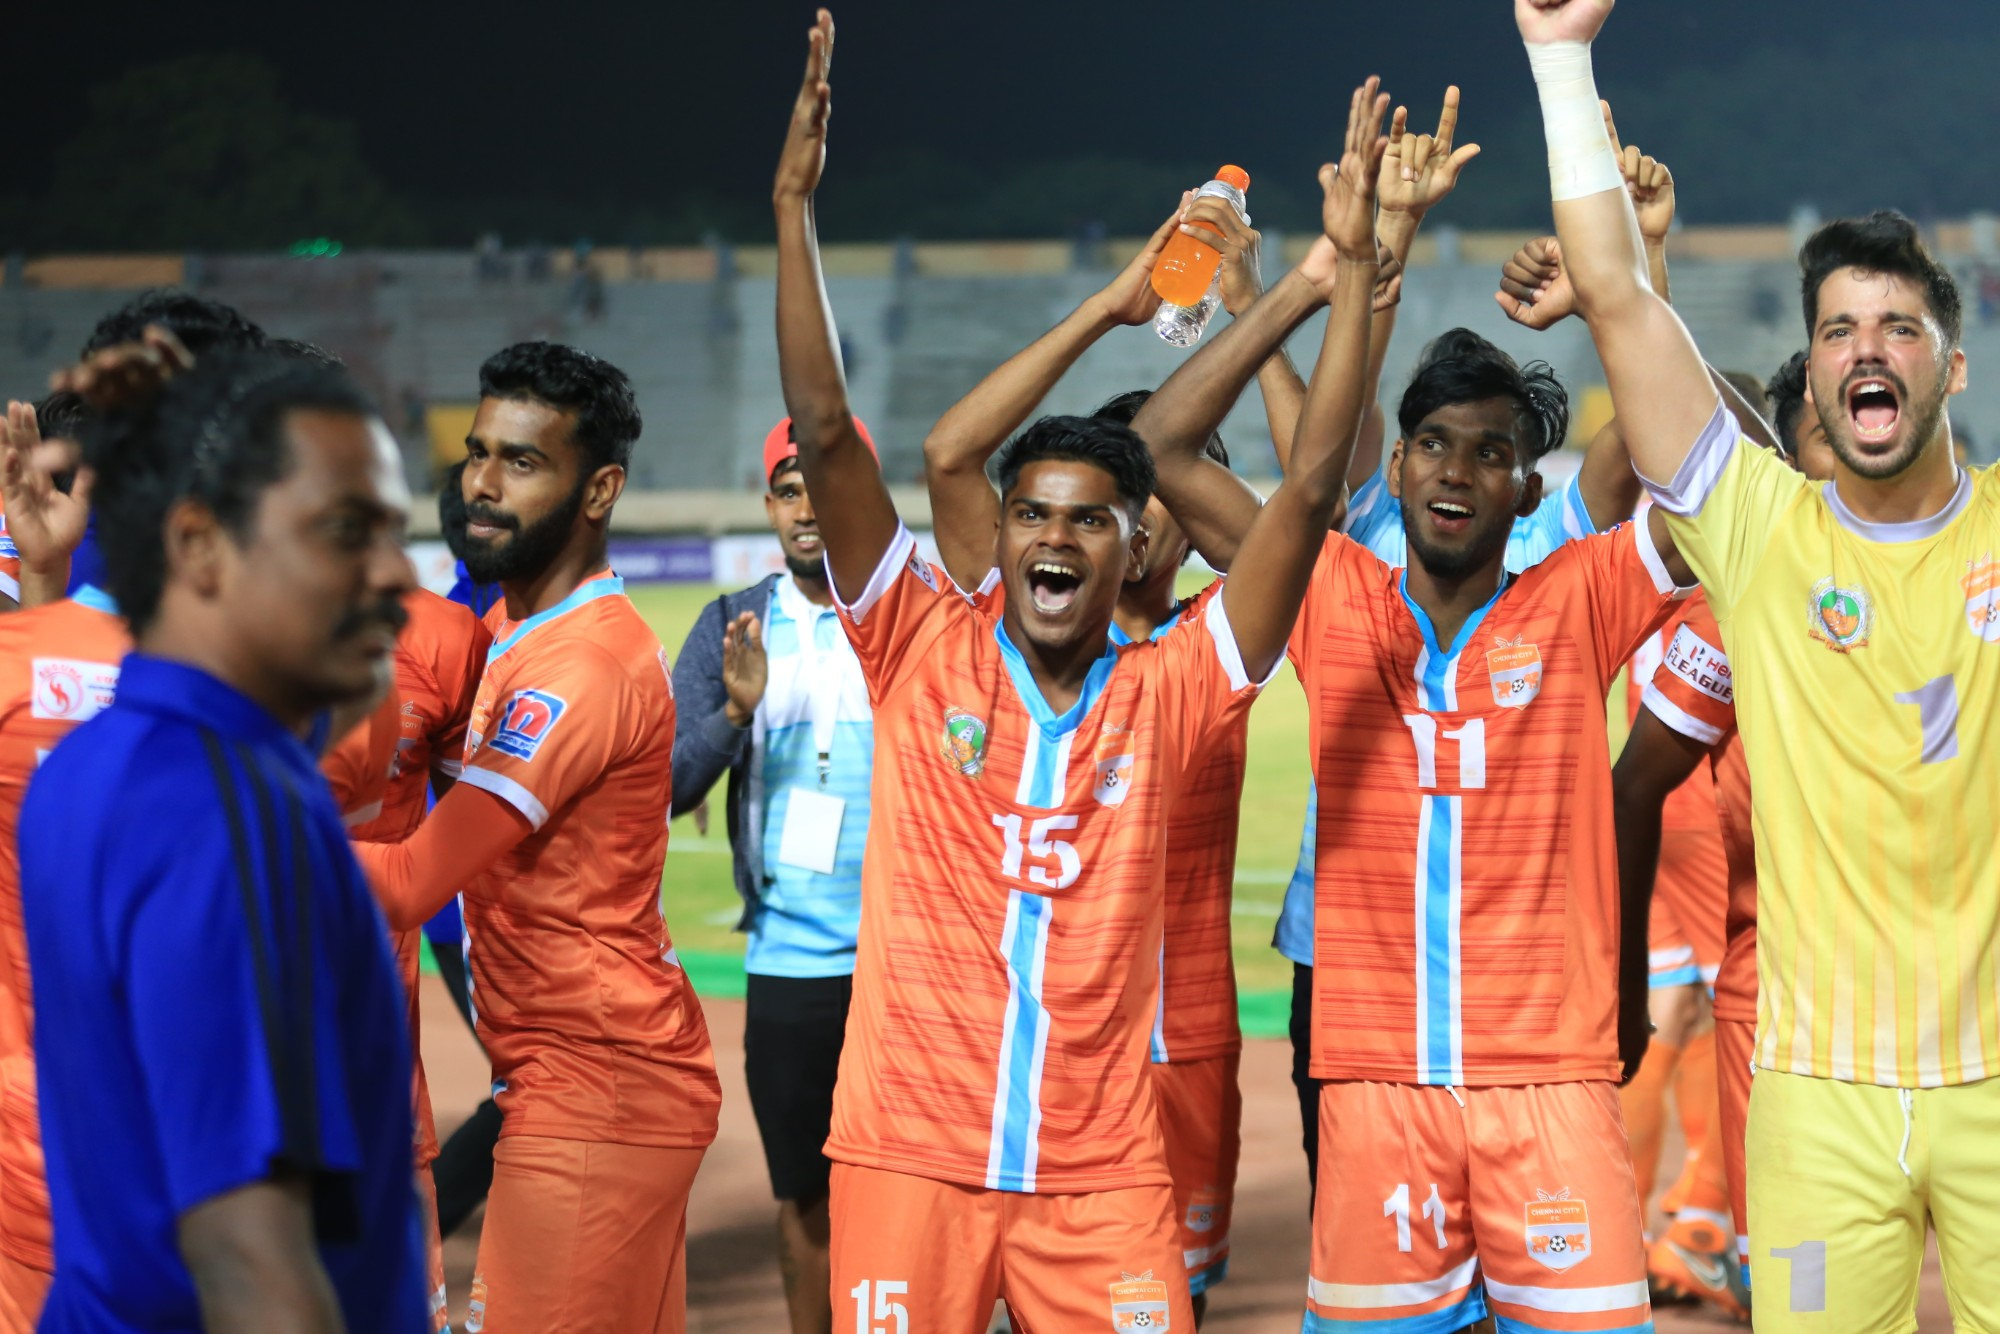 Chennai City FC players after I-League match vs Gokulam Kerala FC